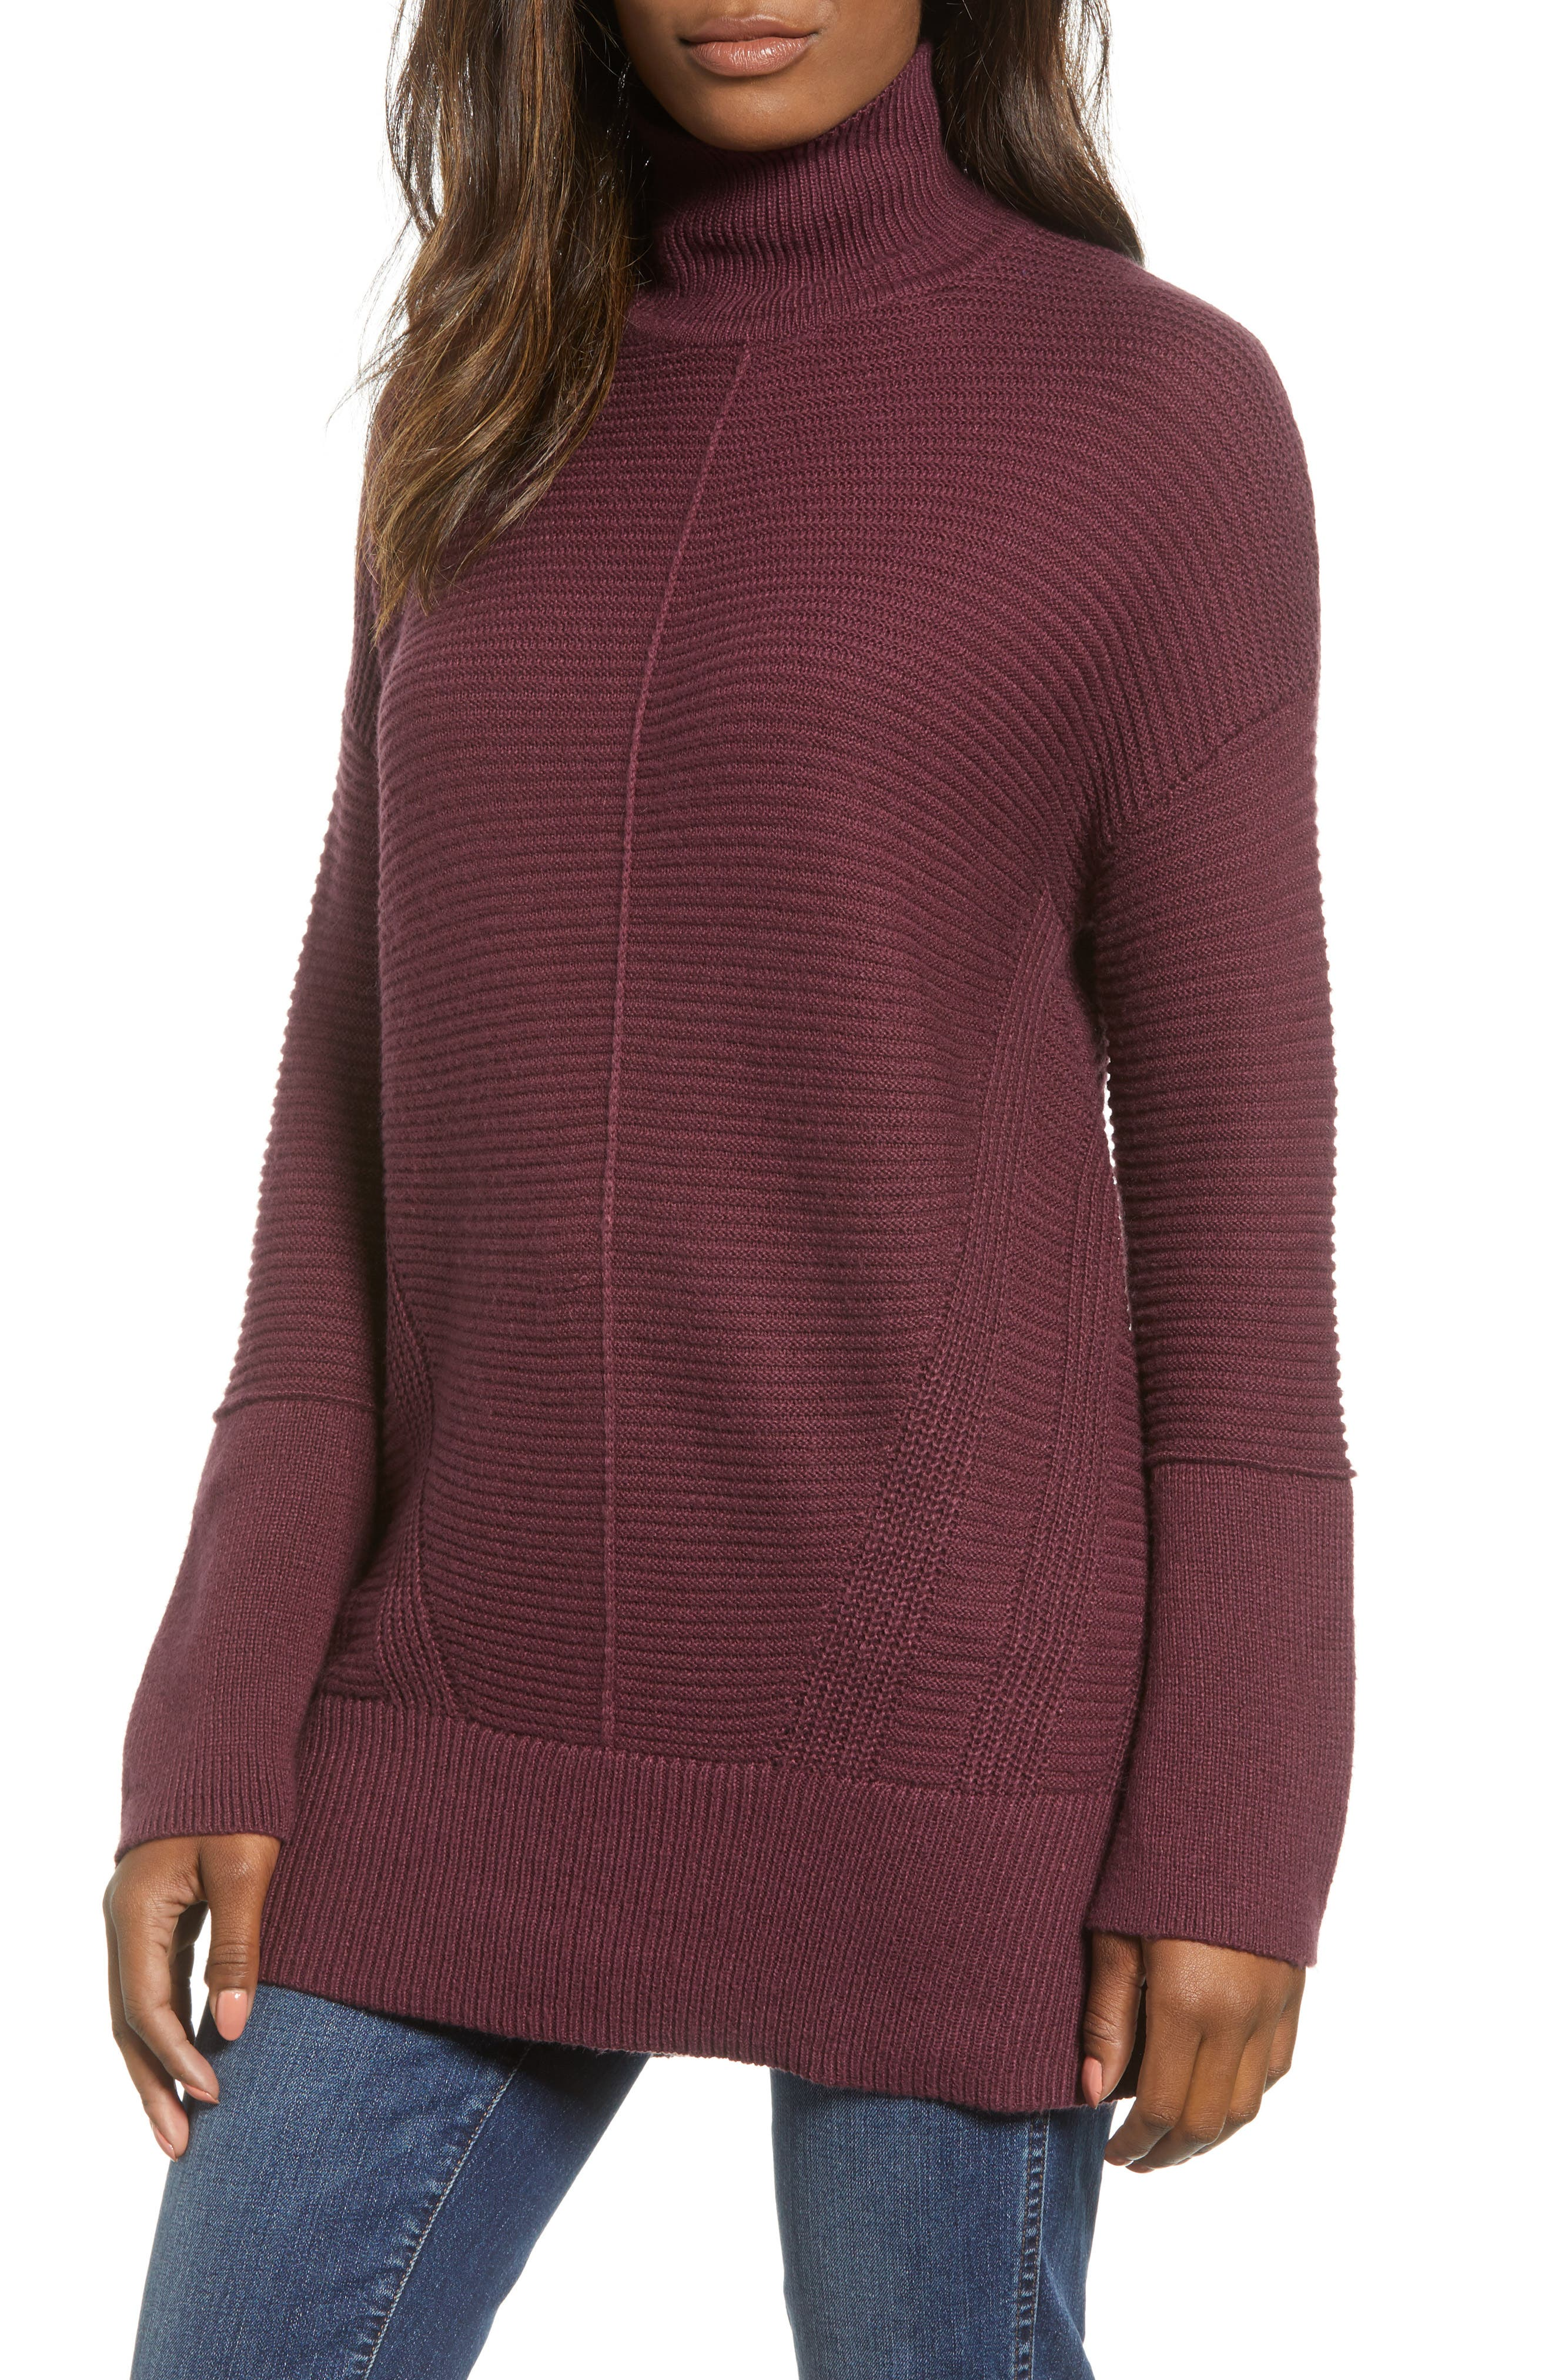 Ribbed Turtleneck Tunic Sweater,                             Main thumbnail 1, color,                             BURGUNDY FIG